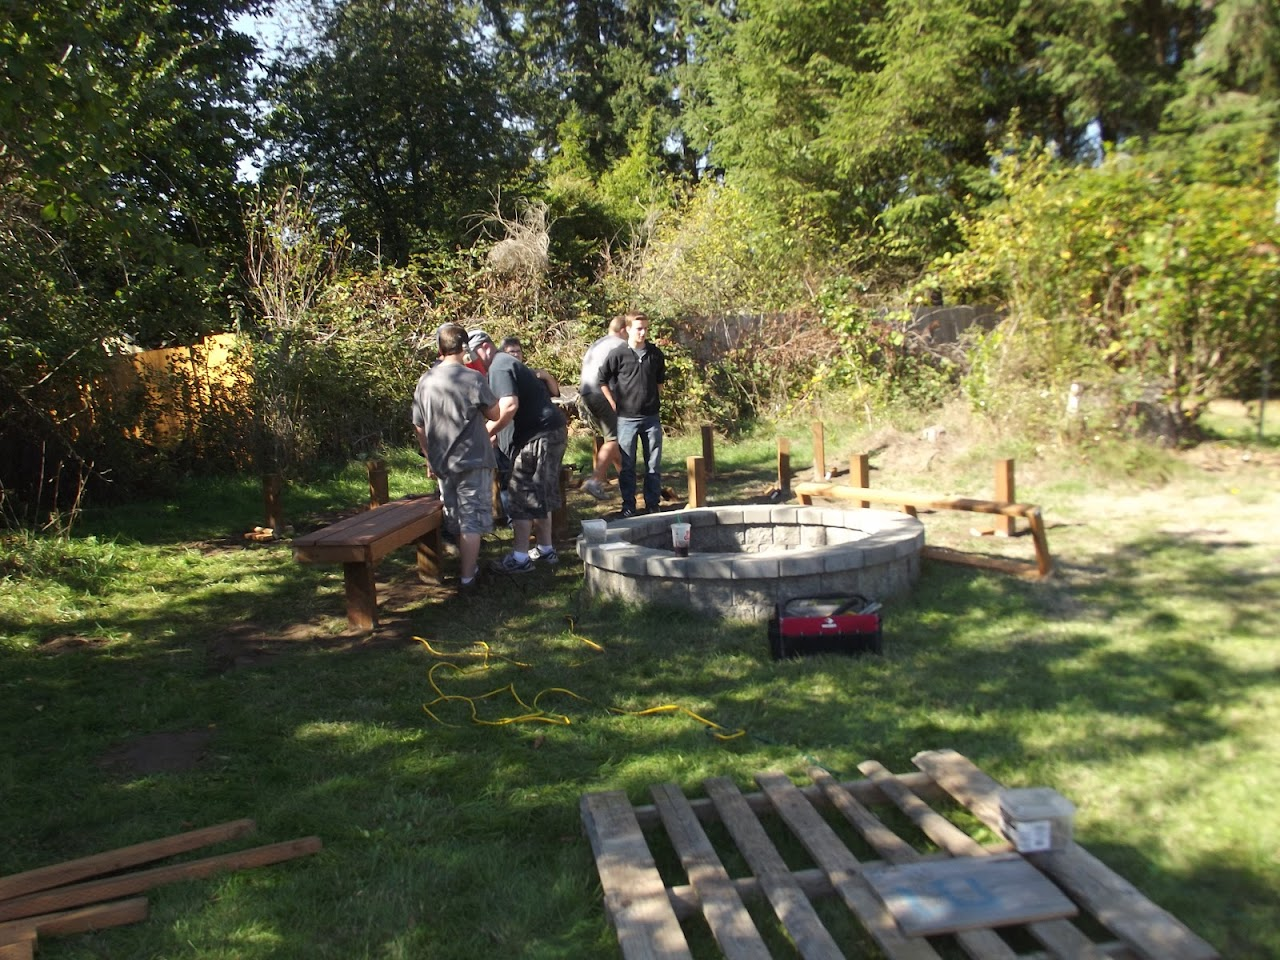 Carsons Eagle Project - October 2015 - DSCF3834.JPG